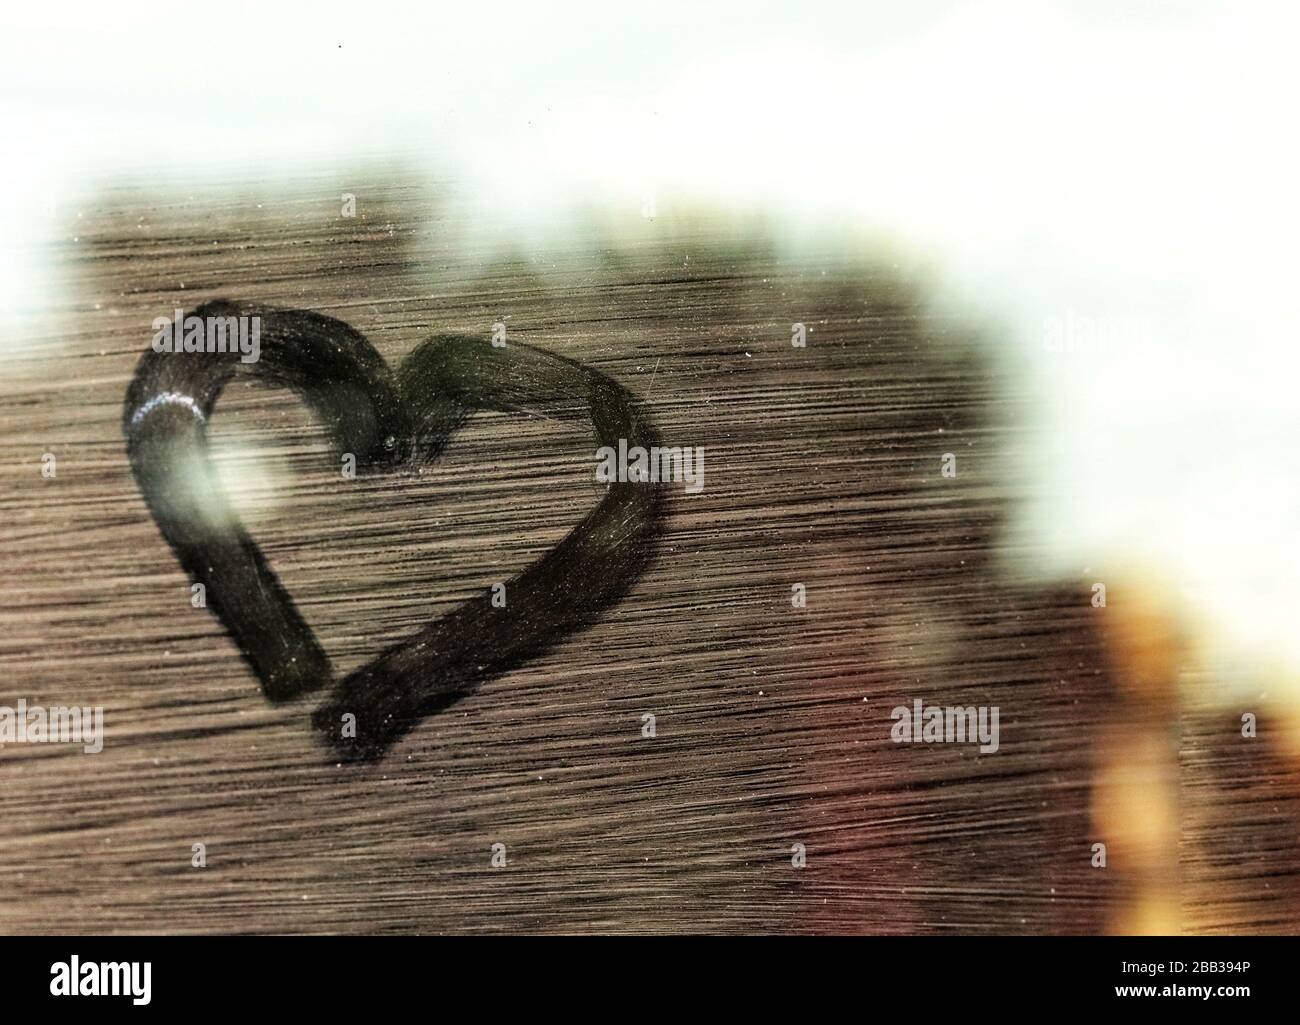 Heart drawing on a glass window showing concept of the struggle to cope with depression during home quarantine and social distancing Stock Photo